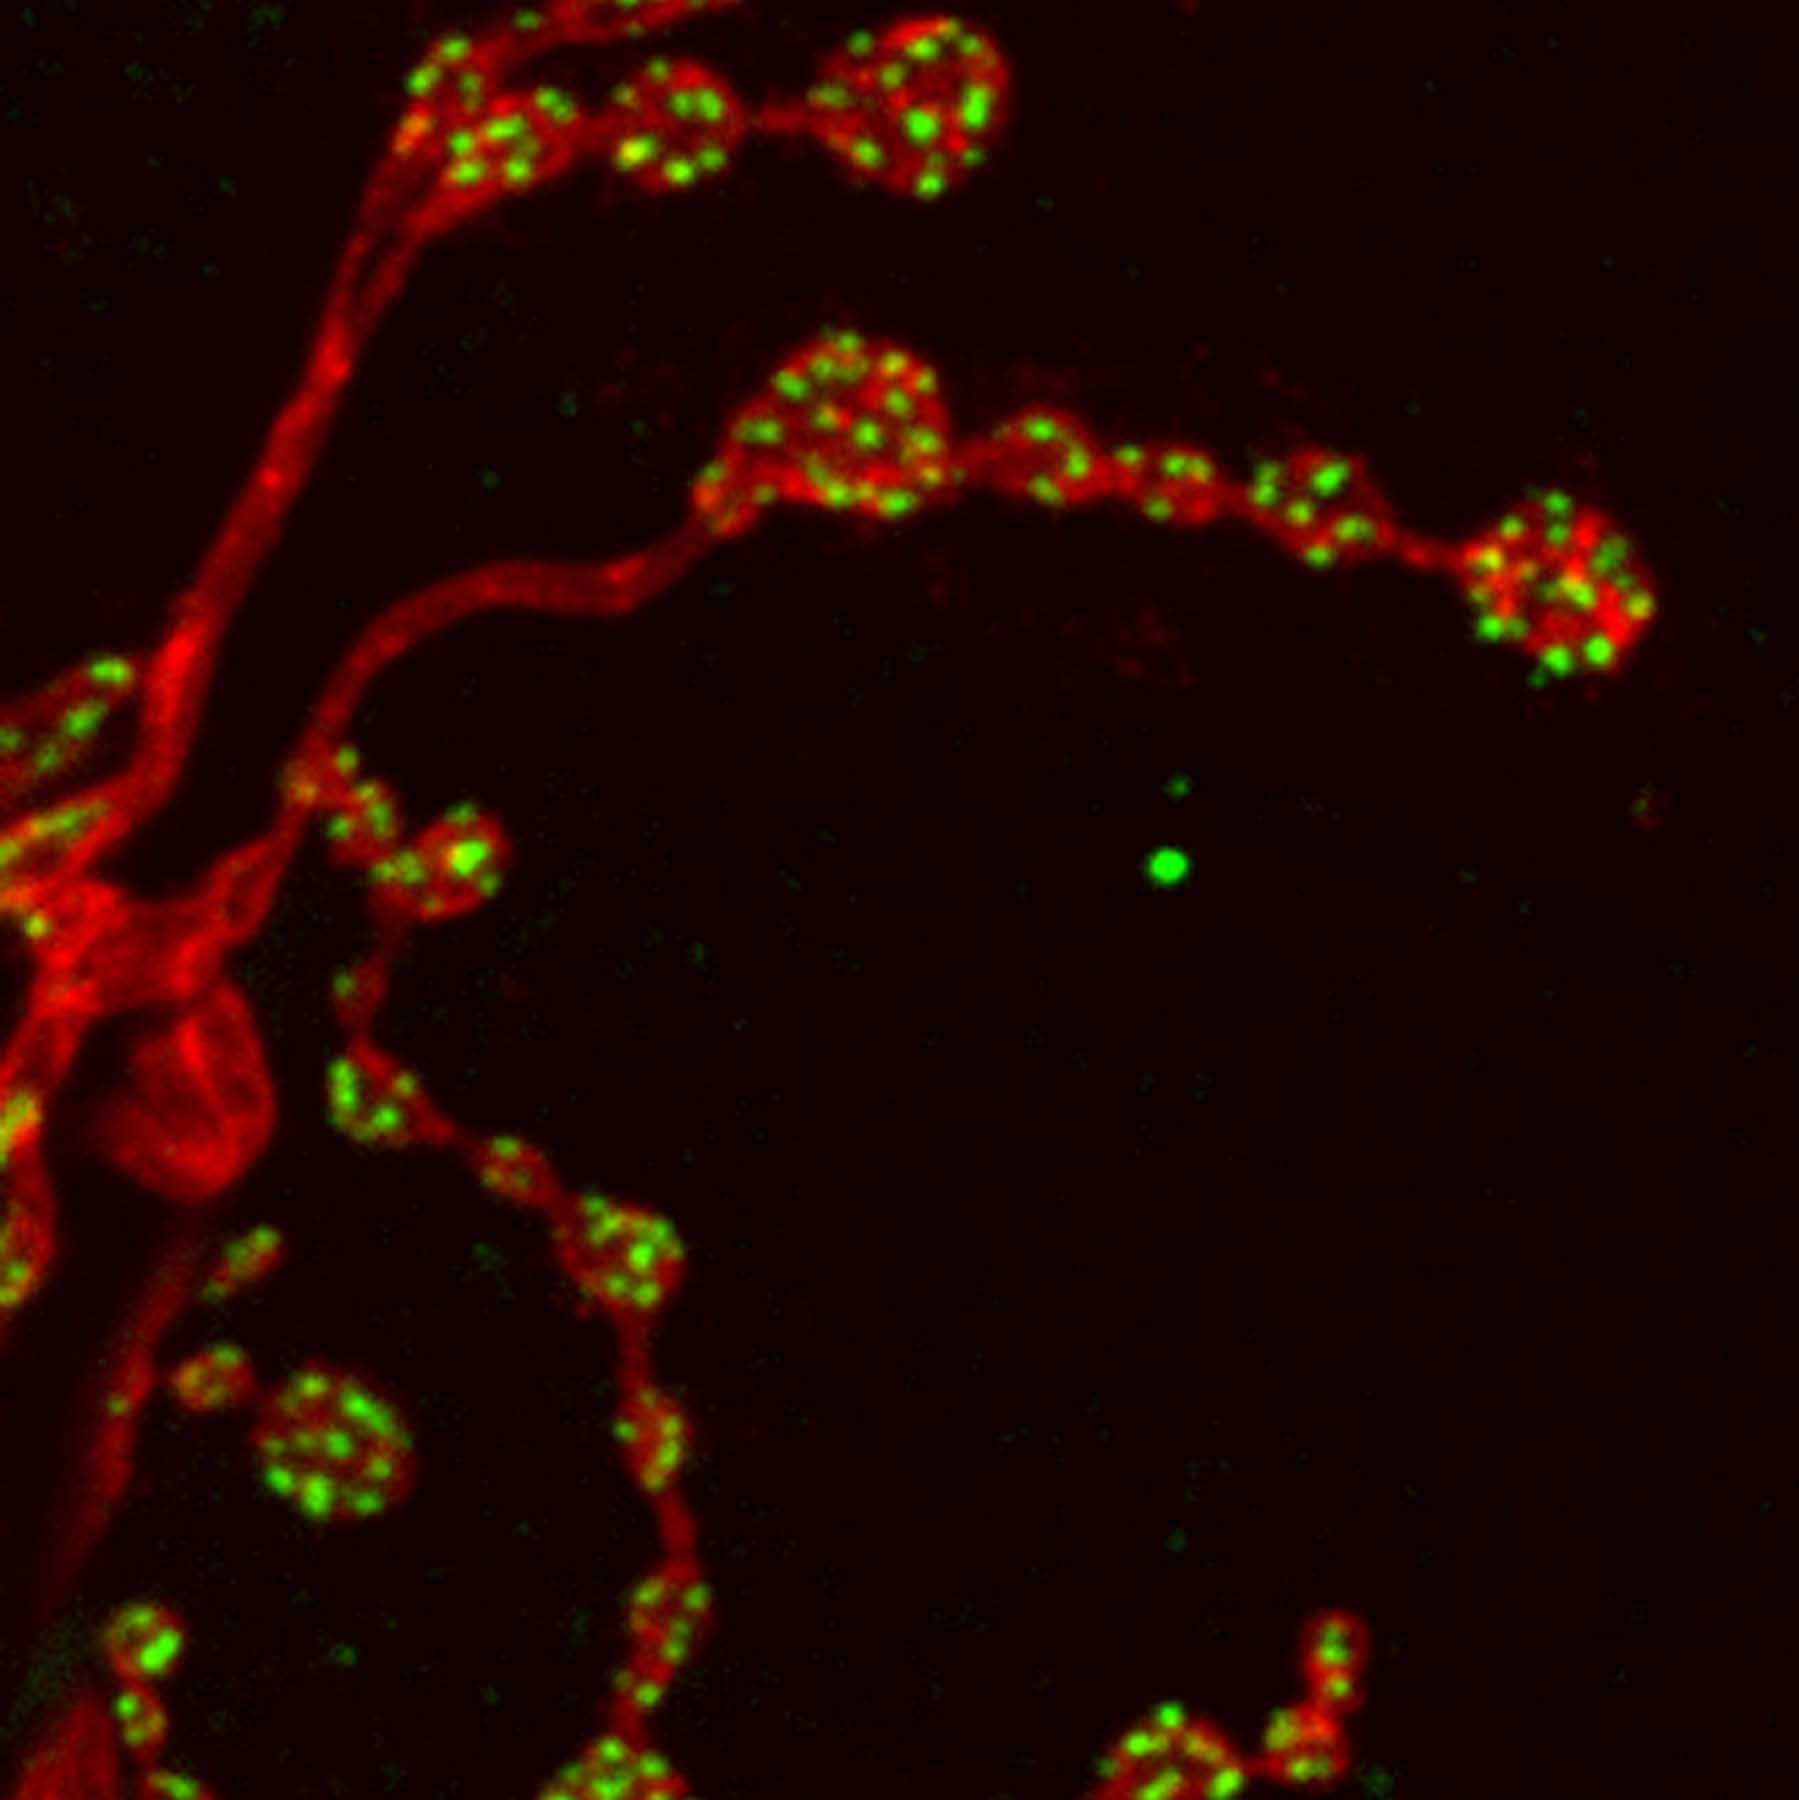 Synaptic boutons in the muscle of a larval fruit fly